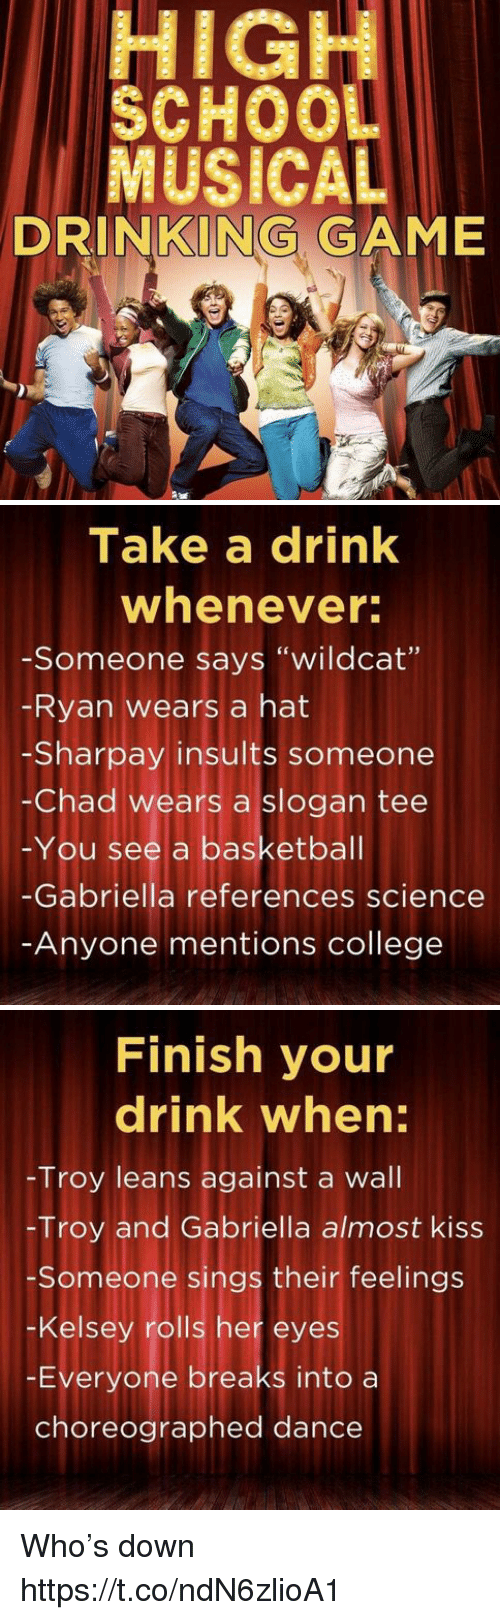 "Chads: HIGH  SCHOOL  MUSICAL  DRINKING GAME   Take a drink  whenever  -Someone says ""wildcat'""  Ryan wears a hat  -Sharpay insults someone  -Chad wears a slogan tee  You see a basketball  Gabriella references science  Anyone mentions college   Finish your  drink when:  Troy leans against a wall  -Troy and Gabriella almost kiss  Someone sings their feelings  -Kelsey rolls her eyes  Everyone breaks into a  choreographed dance Who's down https://t.co/ndN6zlioA1"